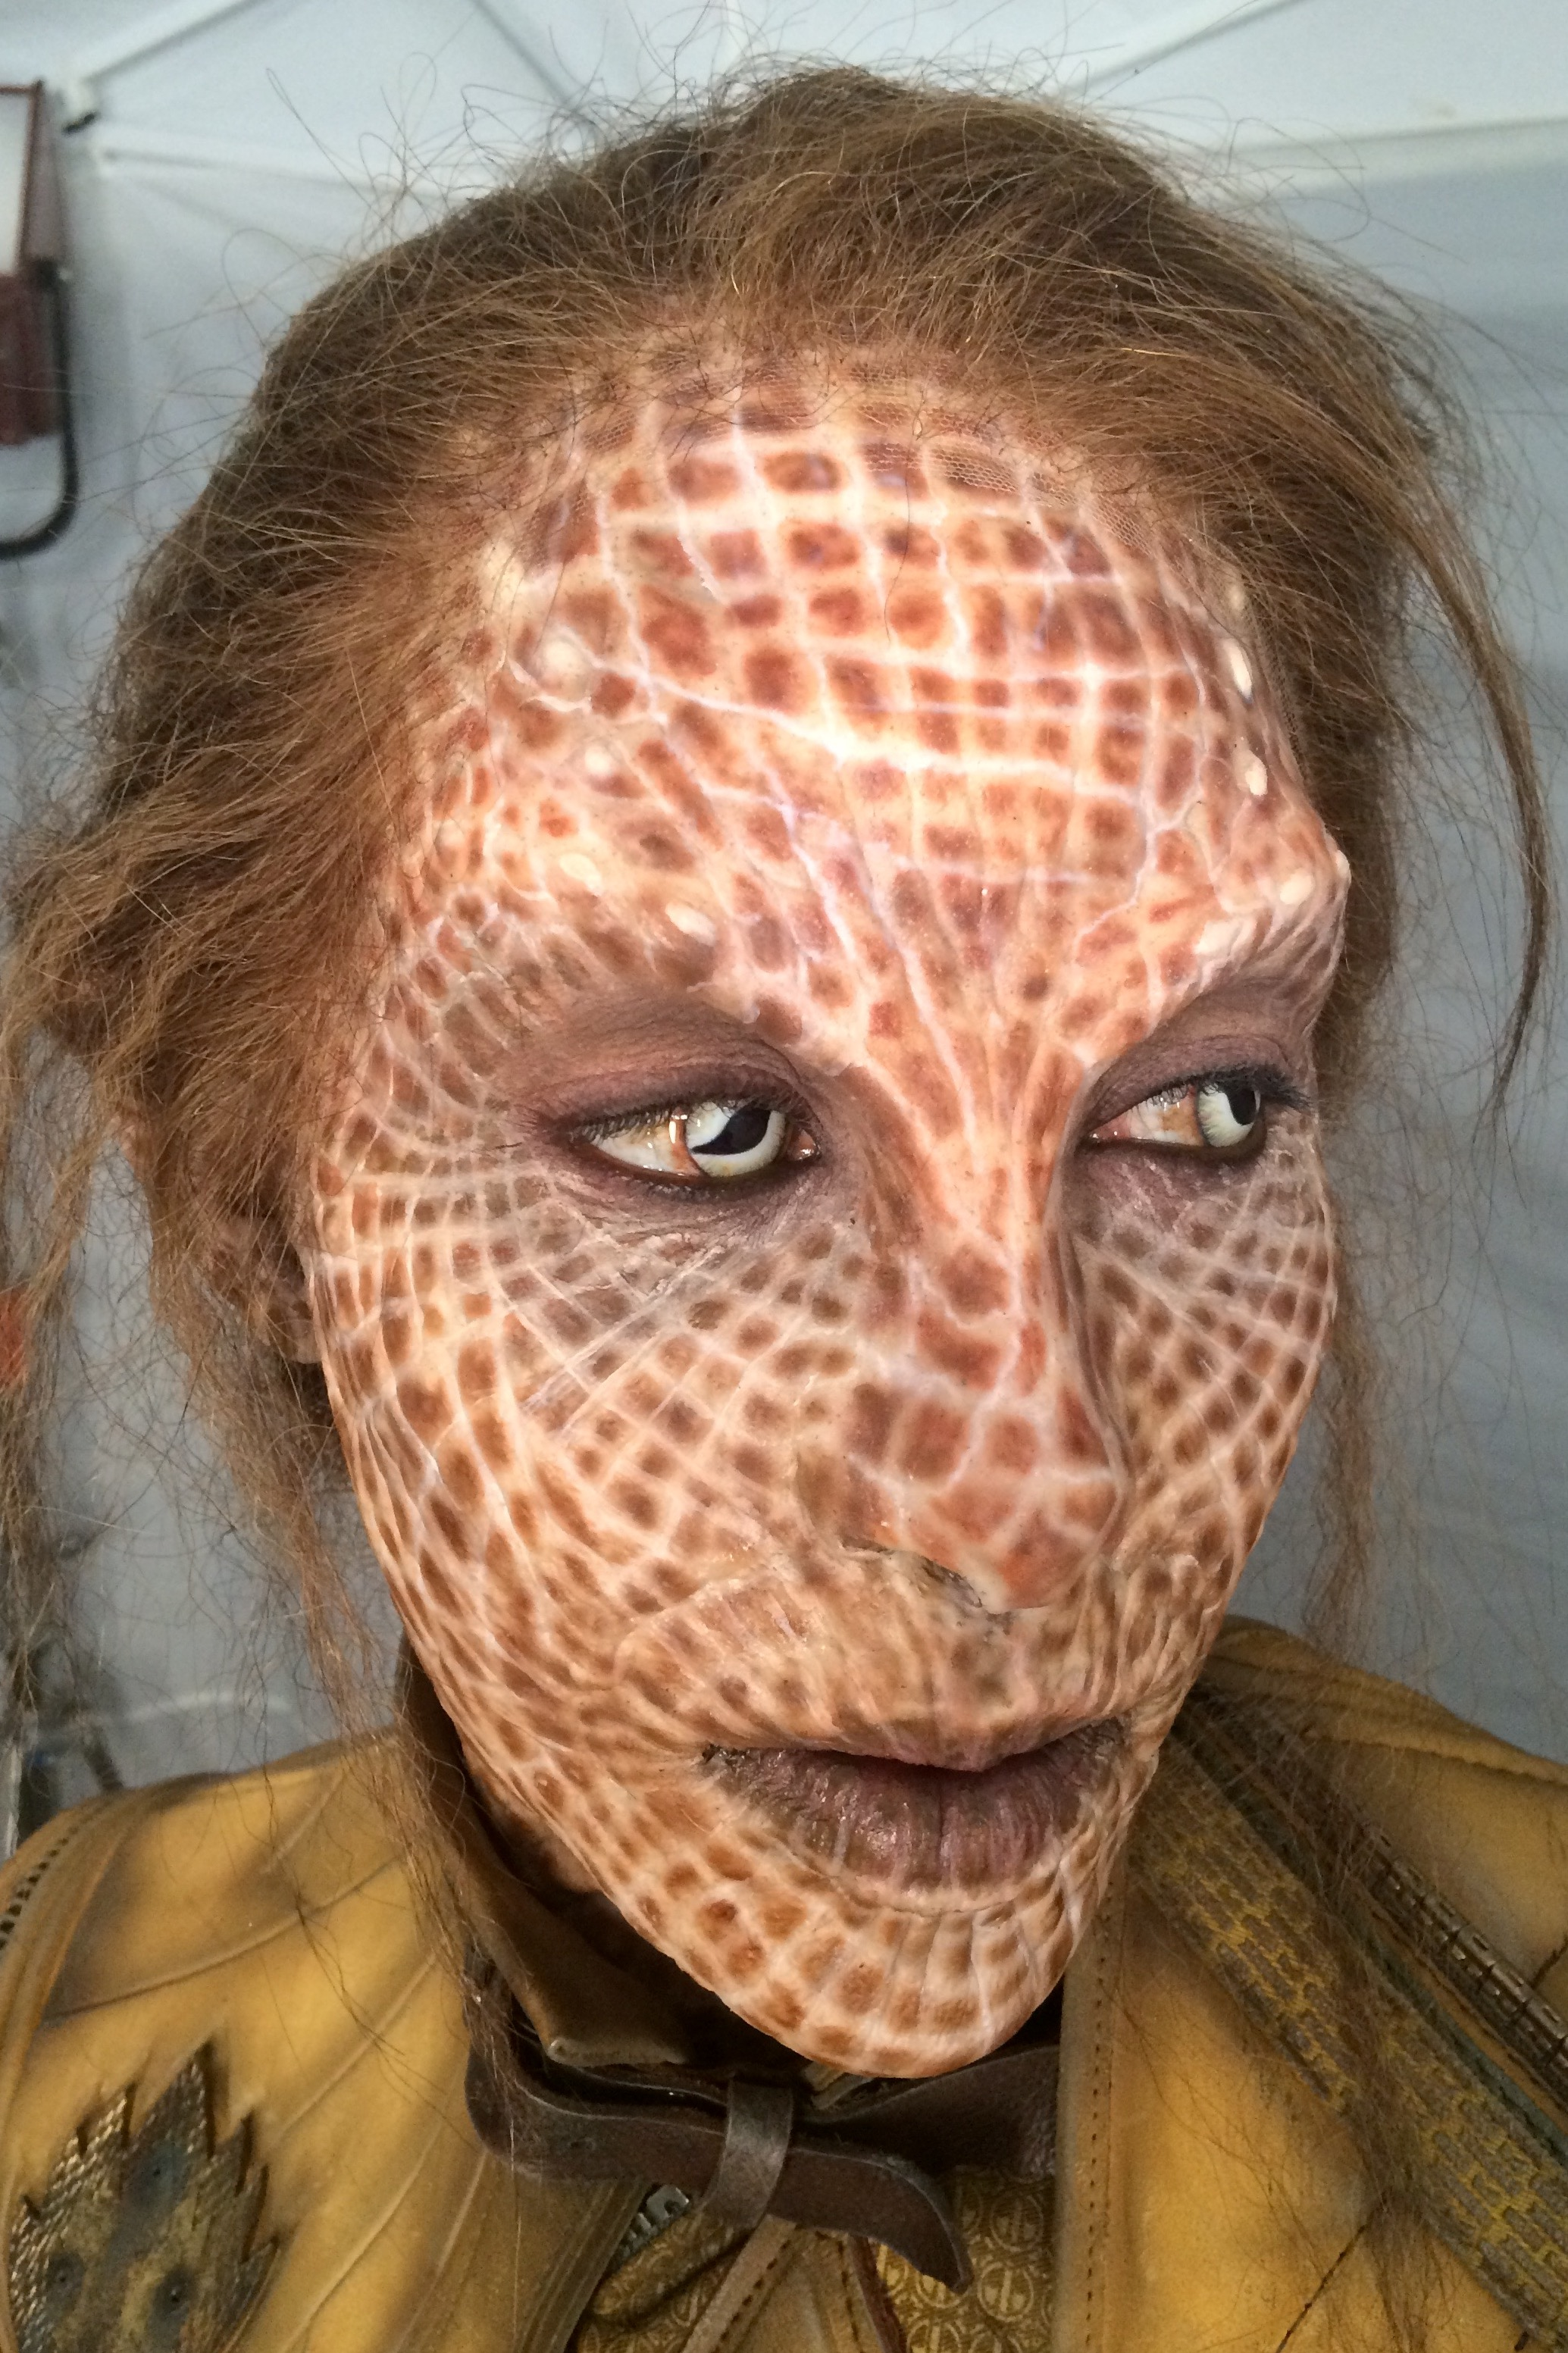 Application with Luandra Whihurst only. Prosthetics created by Legacy Studios. Marvel owned.